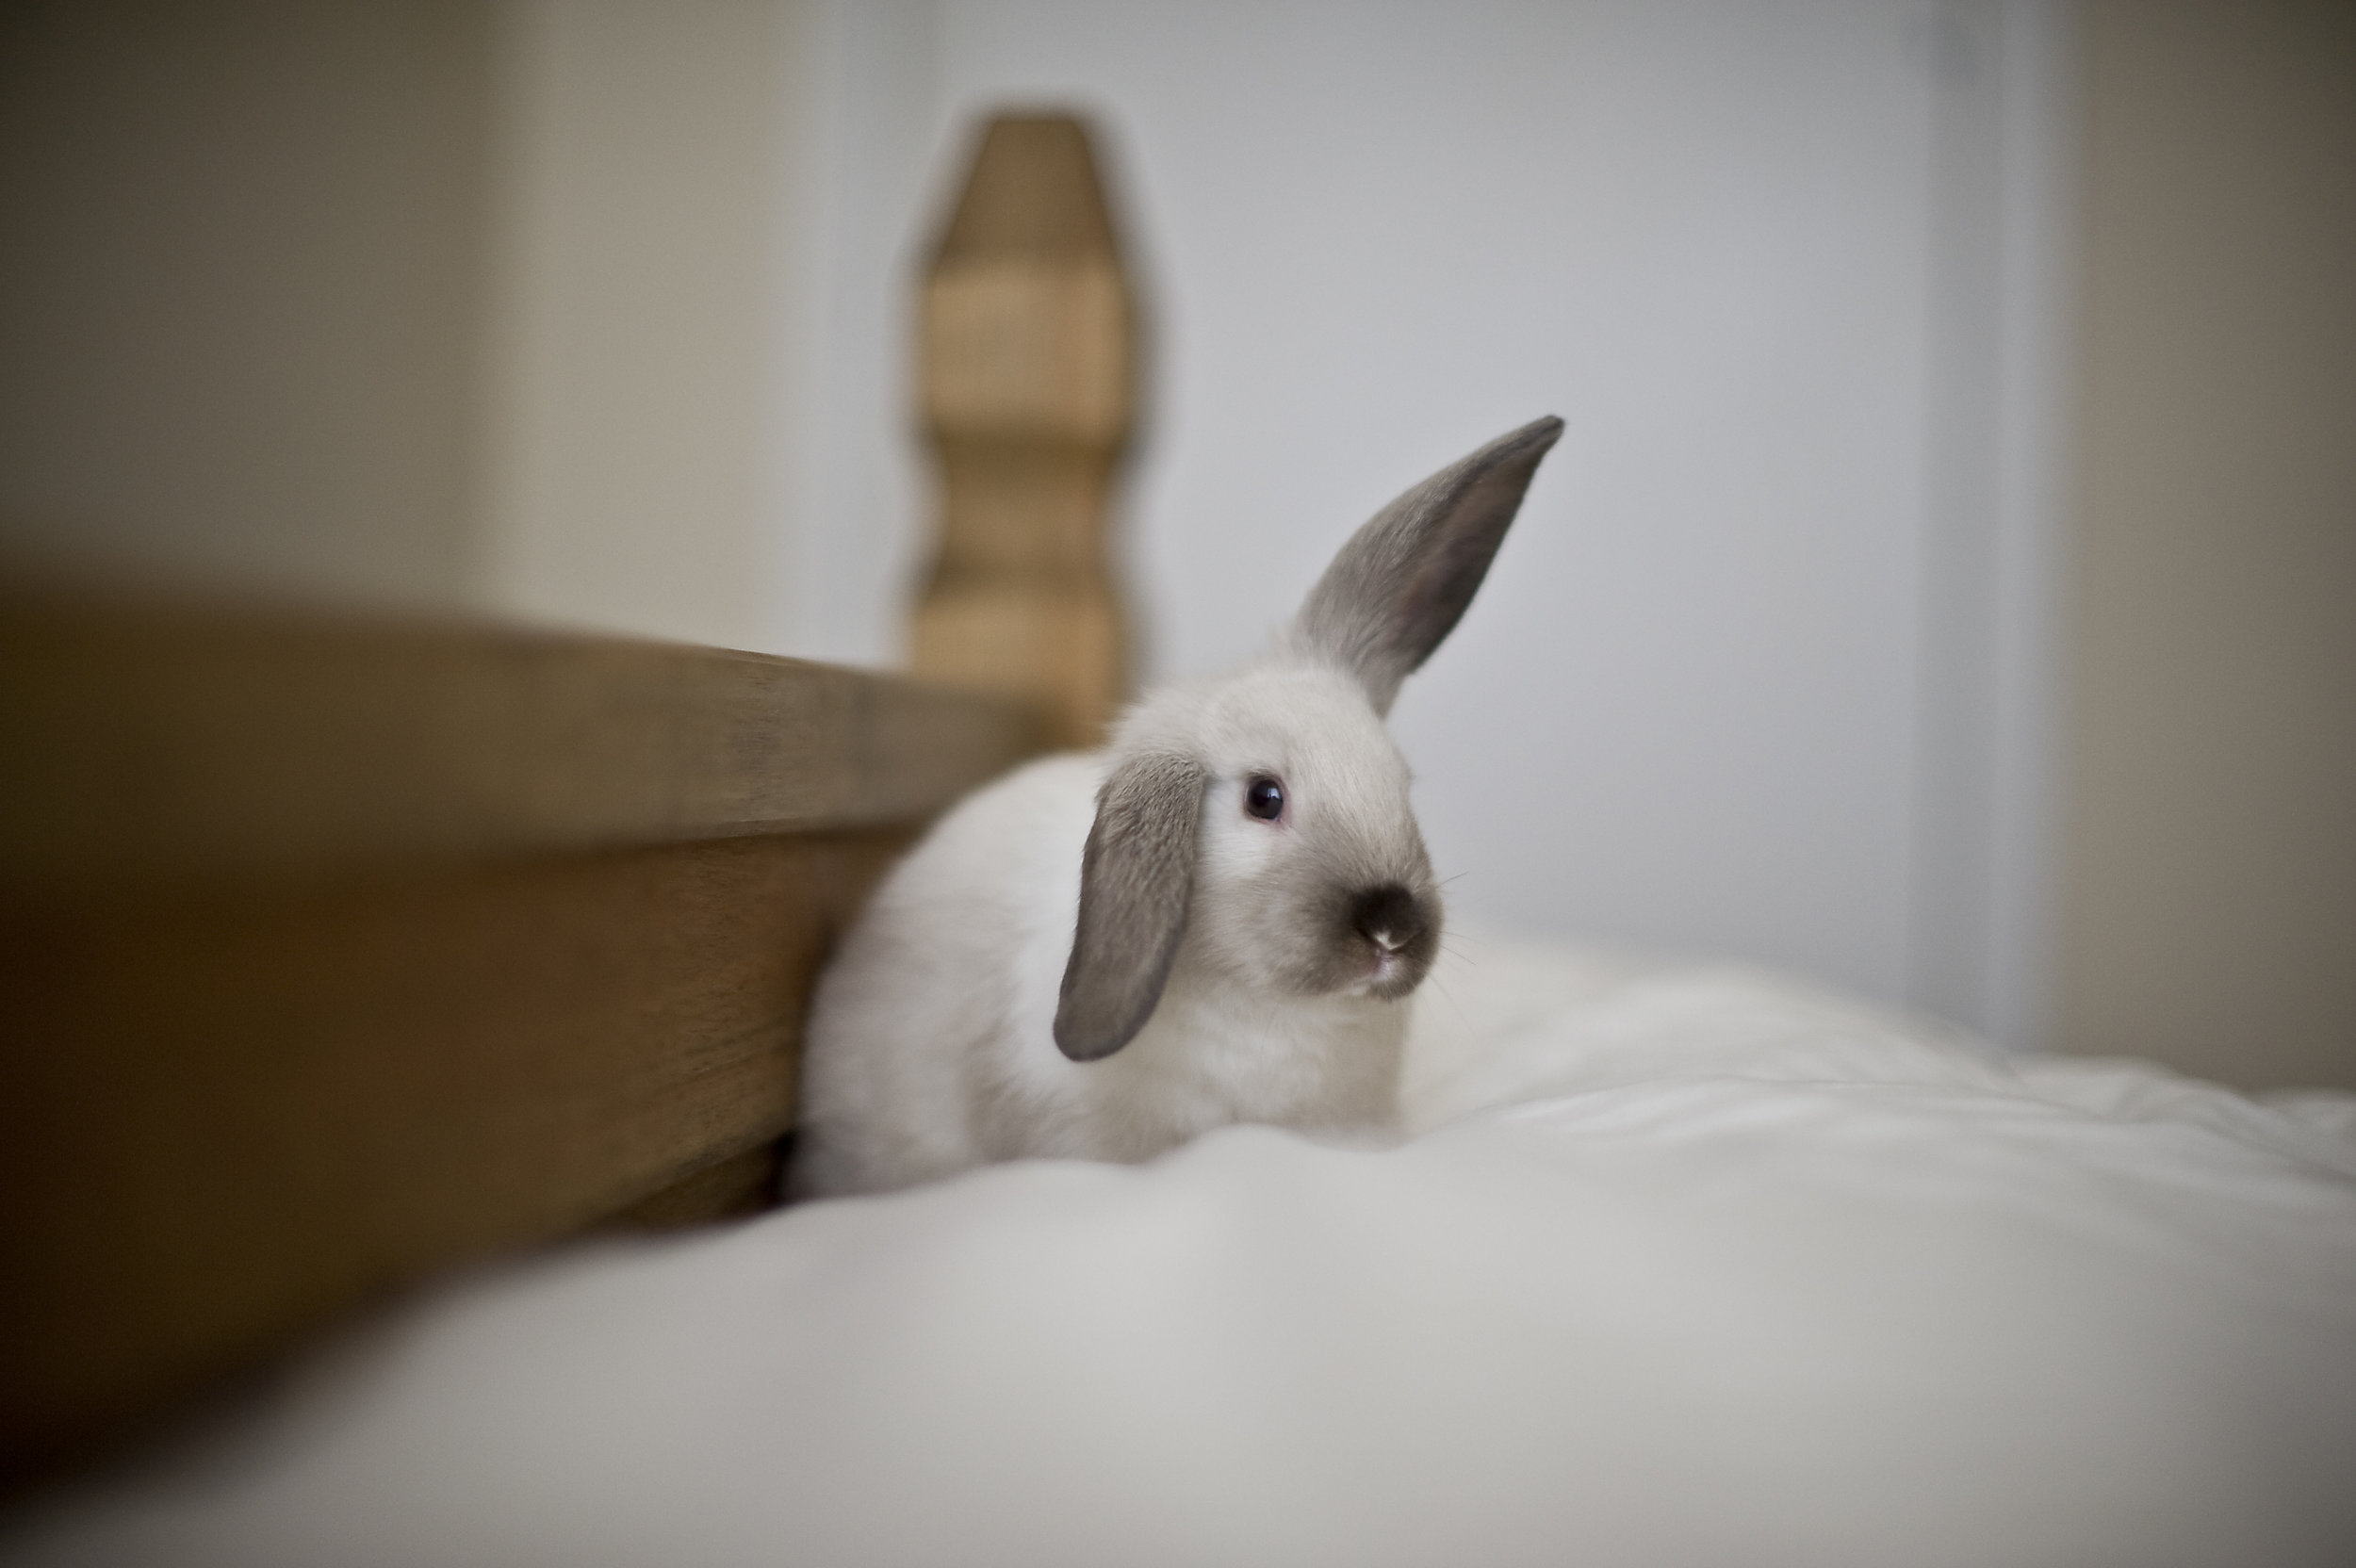 Fluffy Helicopter Bunny on a Fluffy Bed